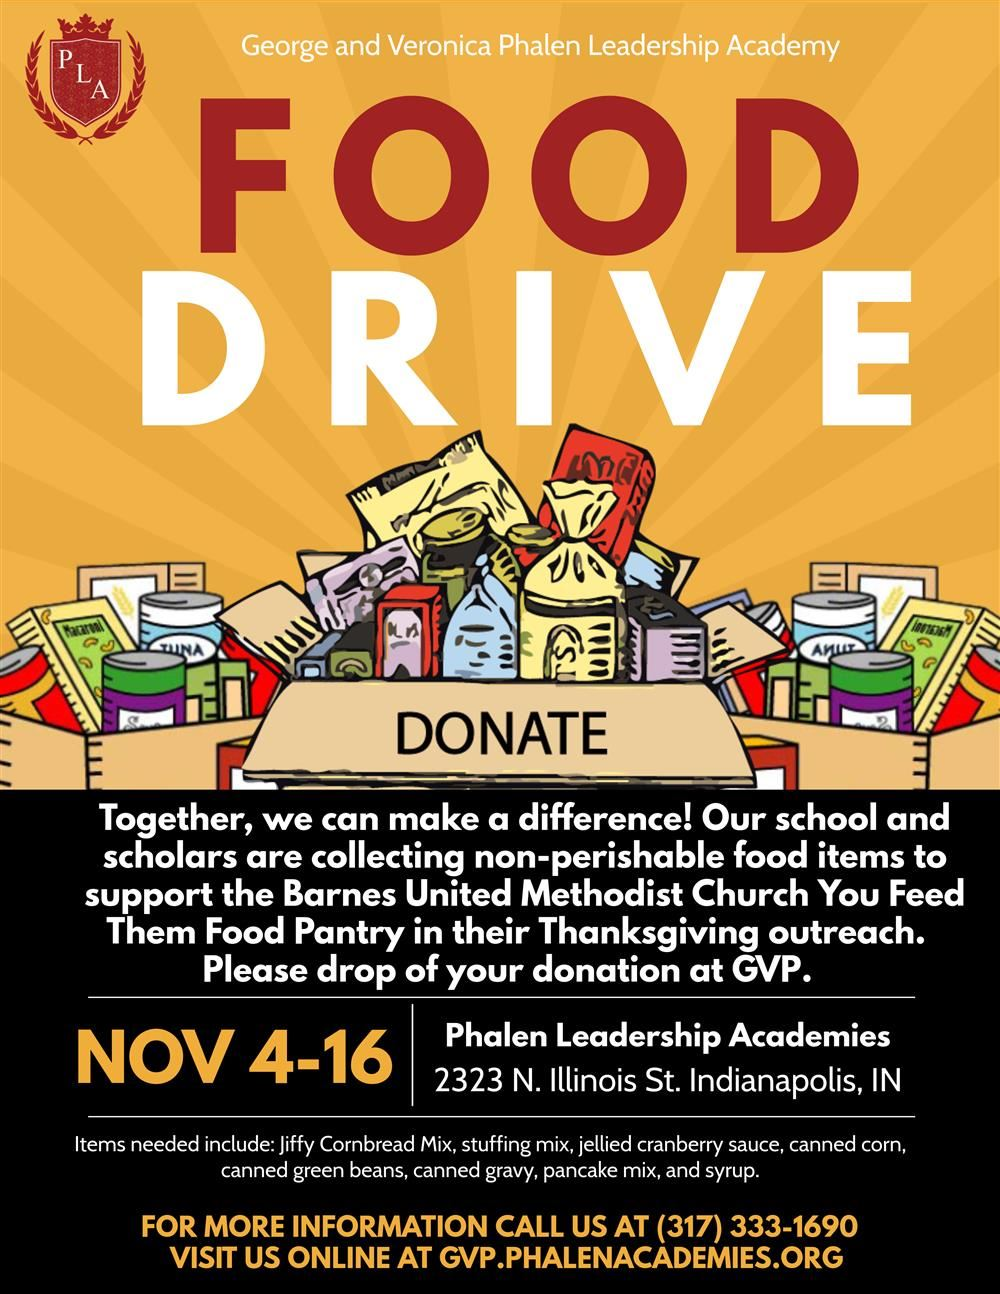 Phalen LEadership Academies Food Drive Nov 4-Nov 16